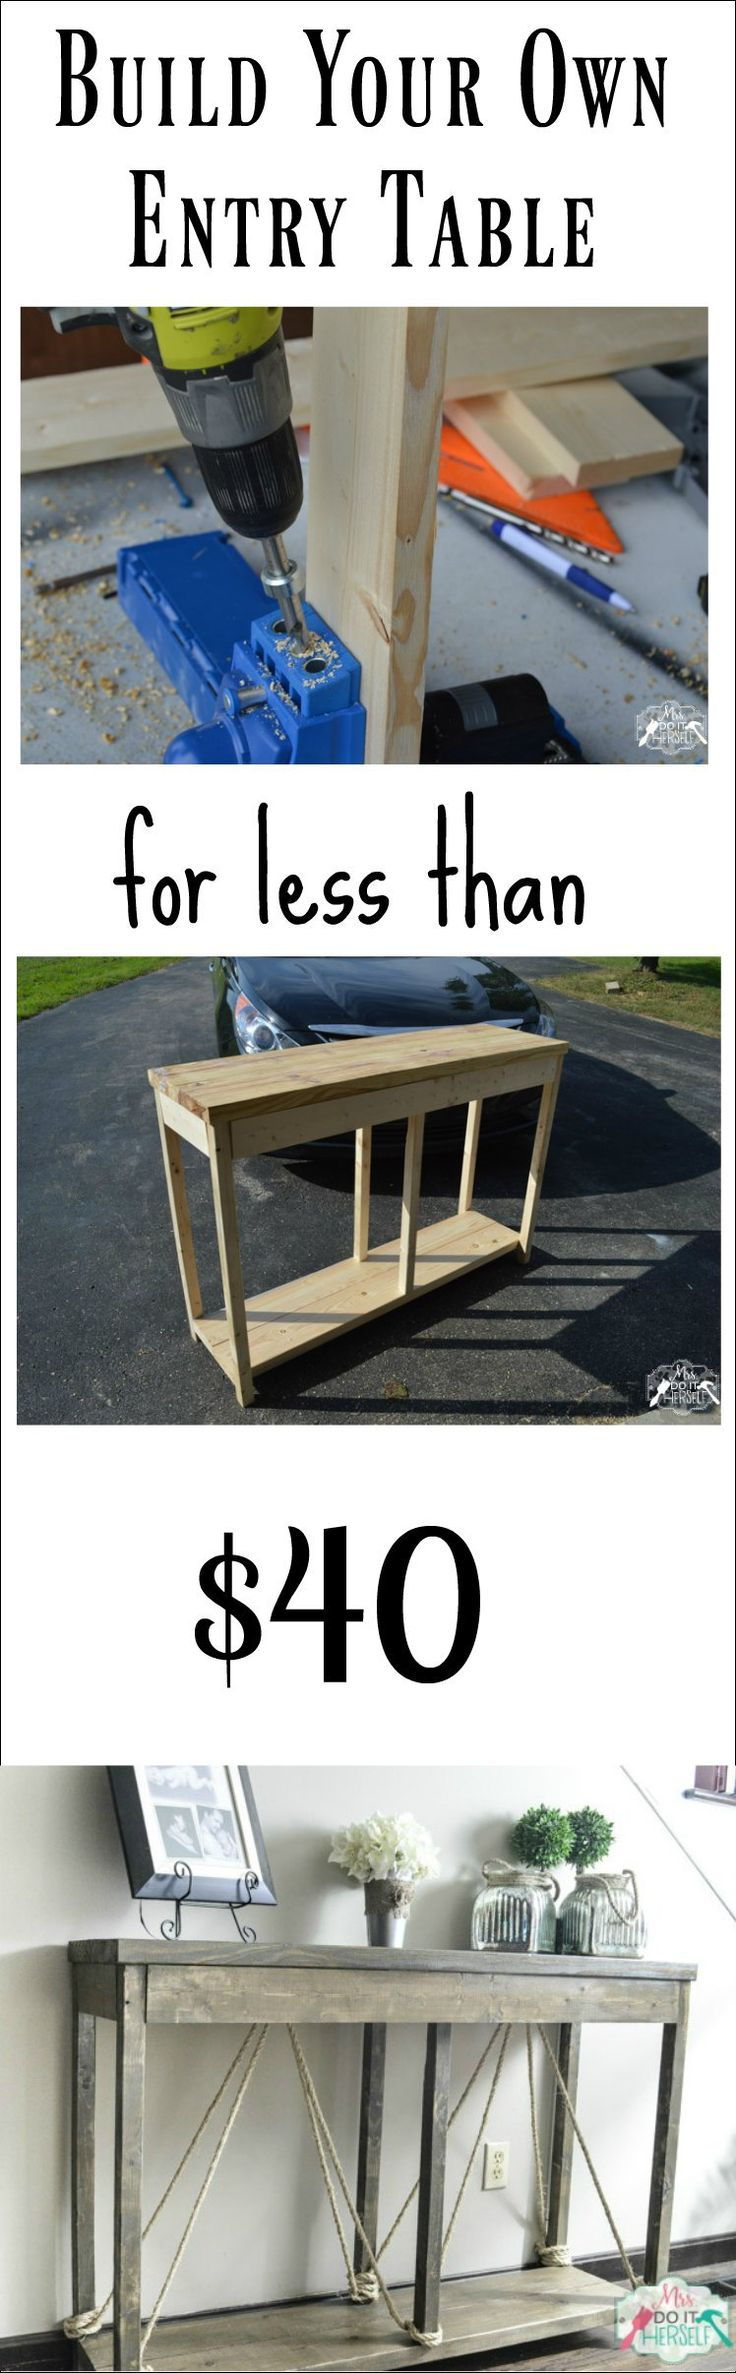 Build your own entry console table for less than $40 -- I really like the rope accents on this rustic style table!